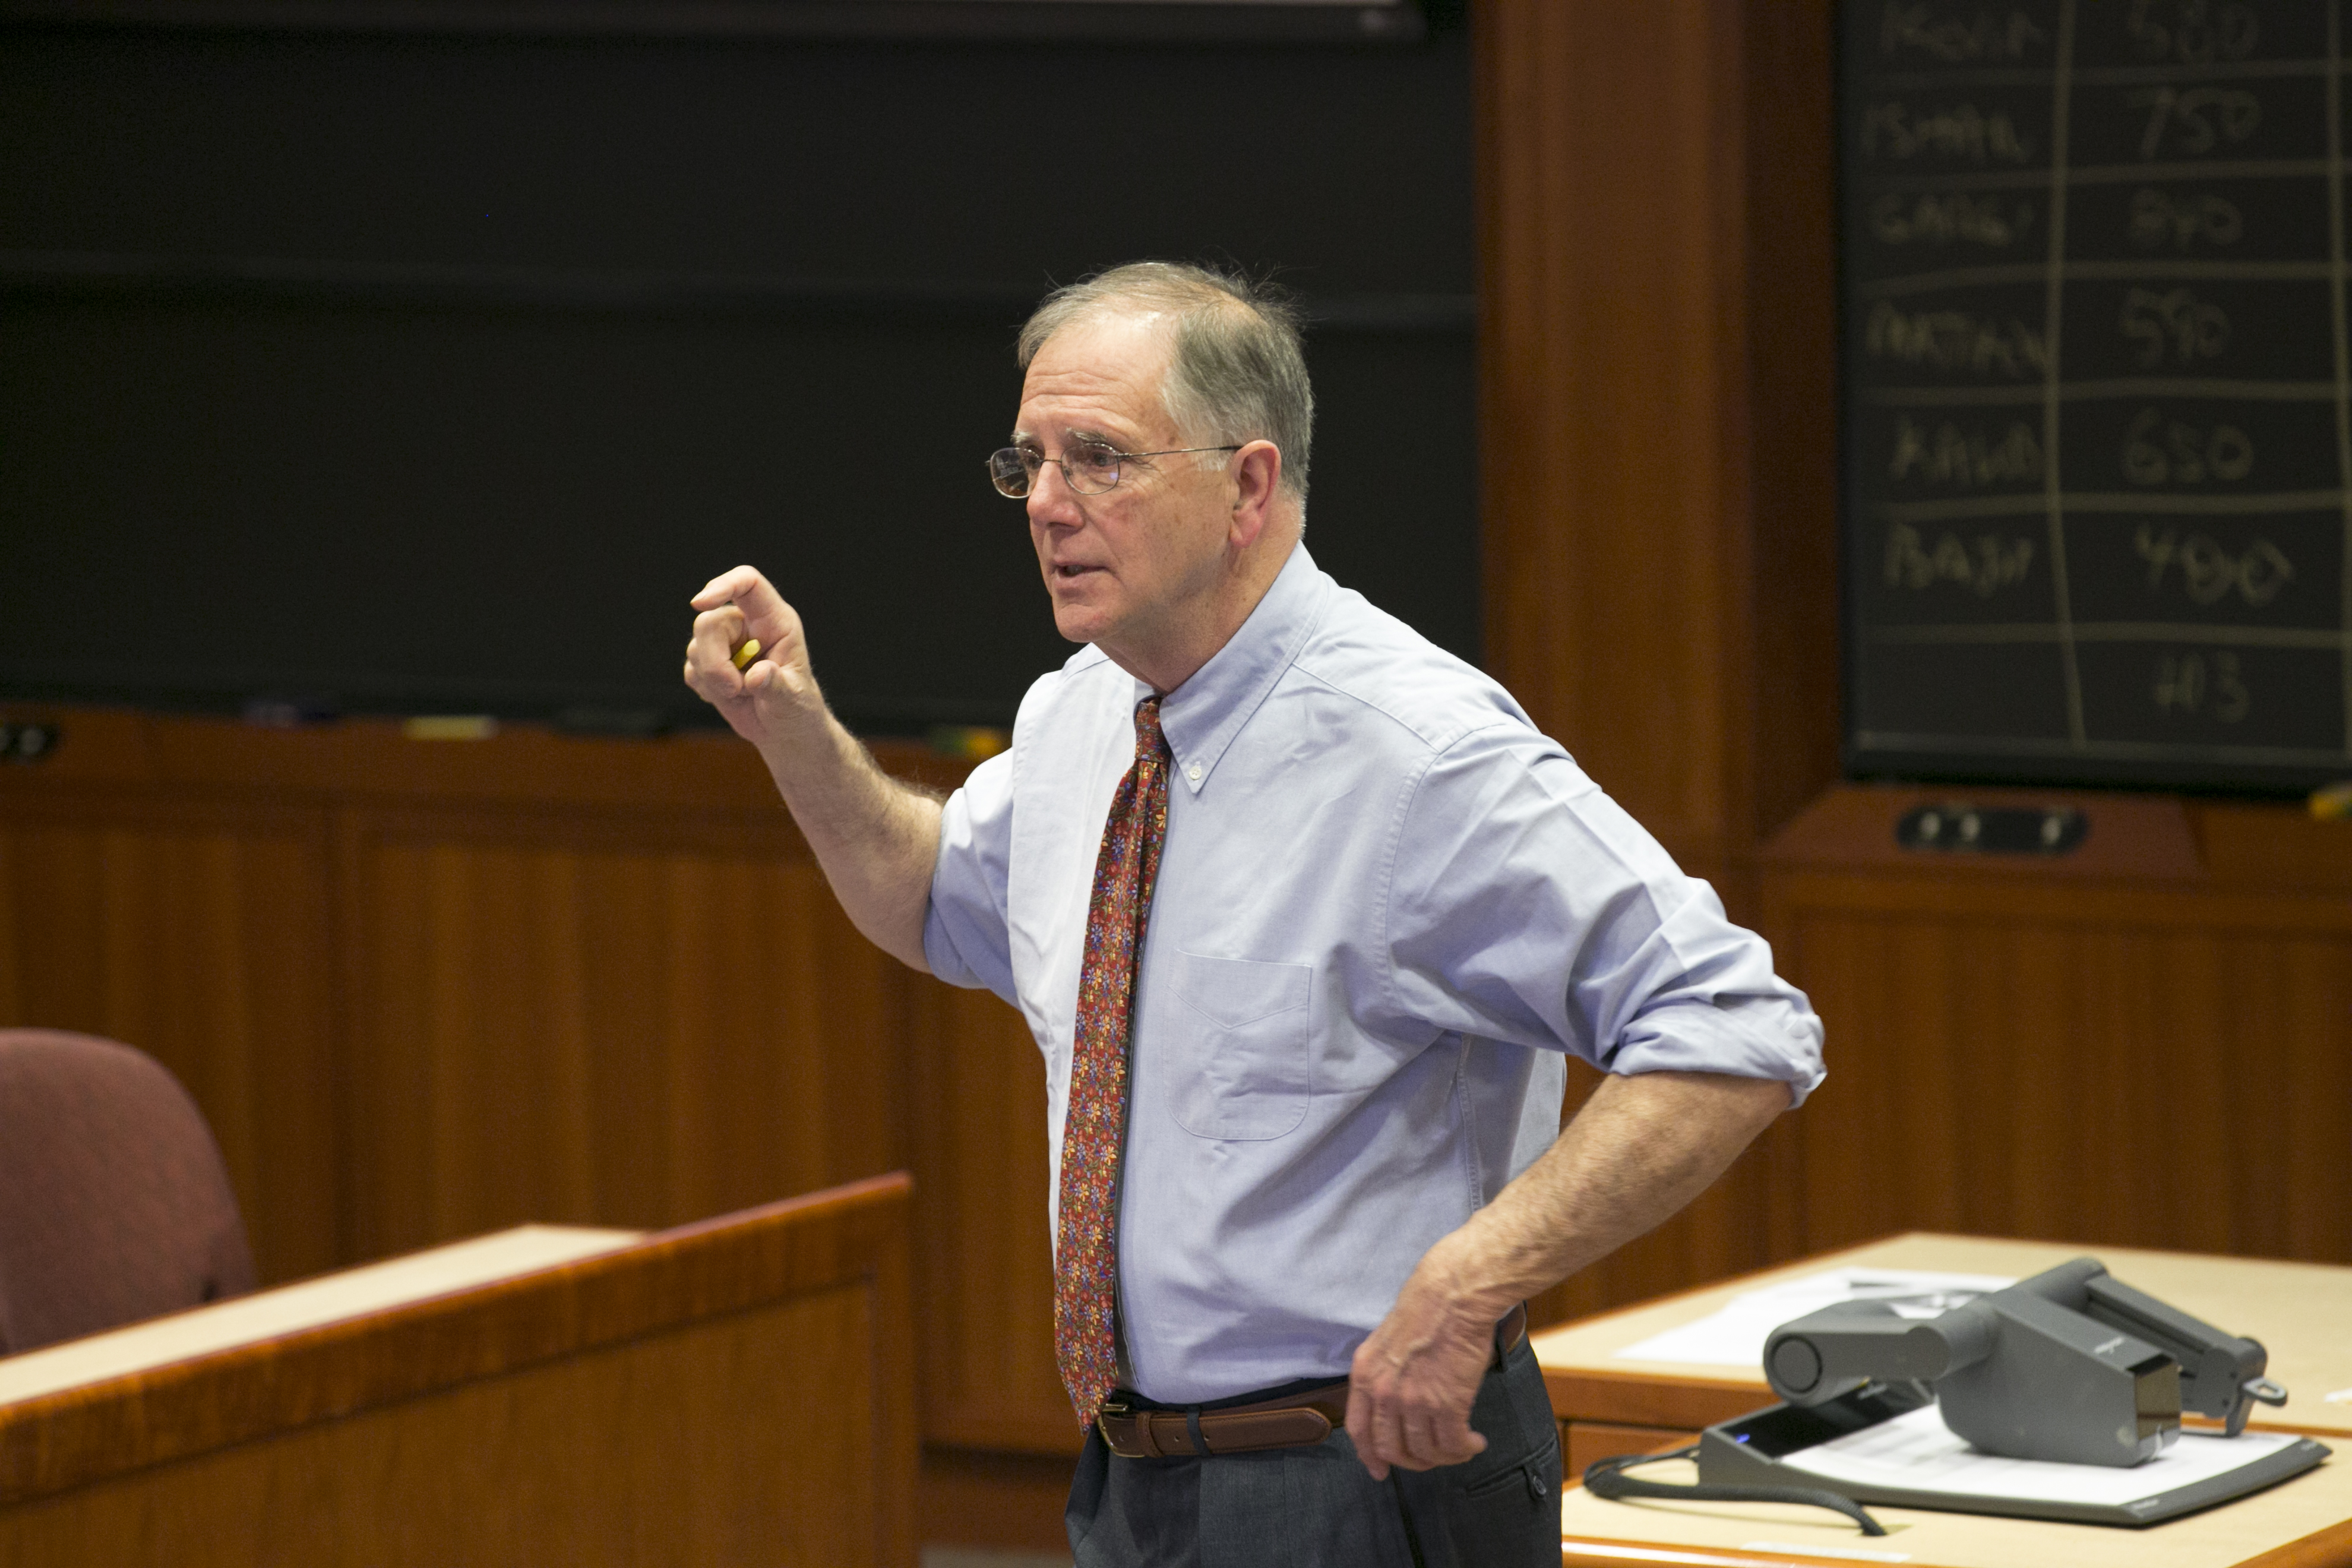 File:HBS Professor Michael Wheeler.jpg - Wikimedia Commons